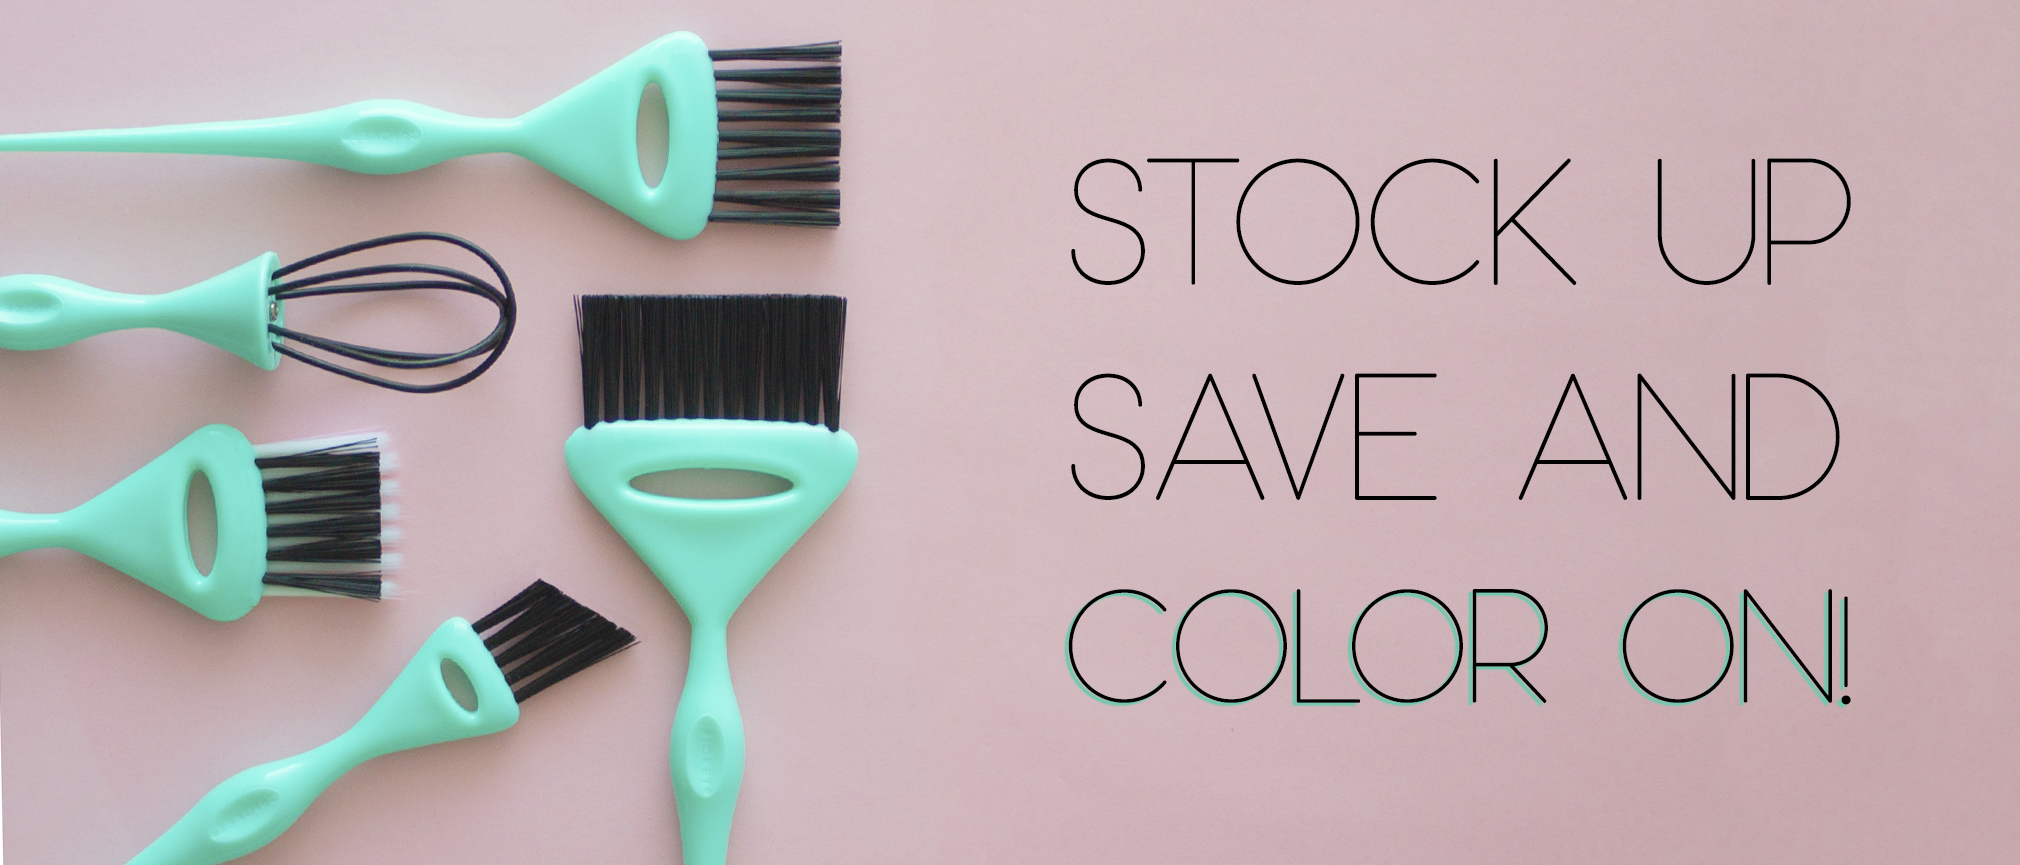 Color Cocktail Hair Coloring Tools On Sale Now